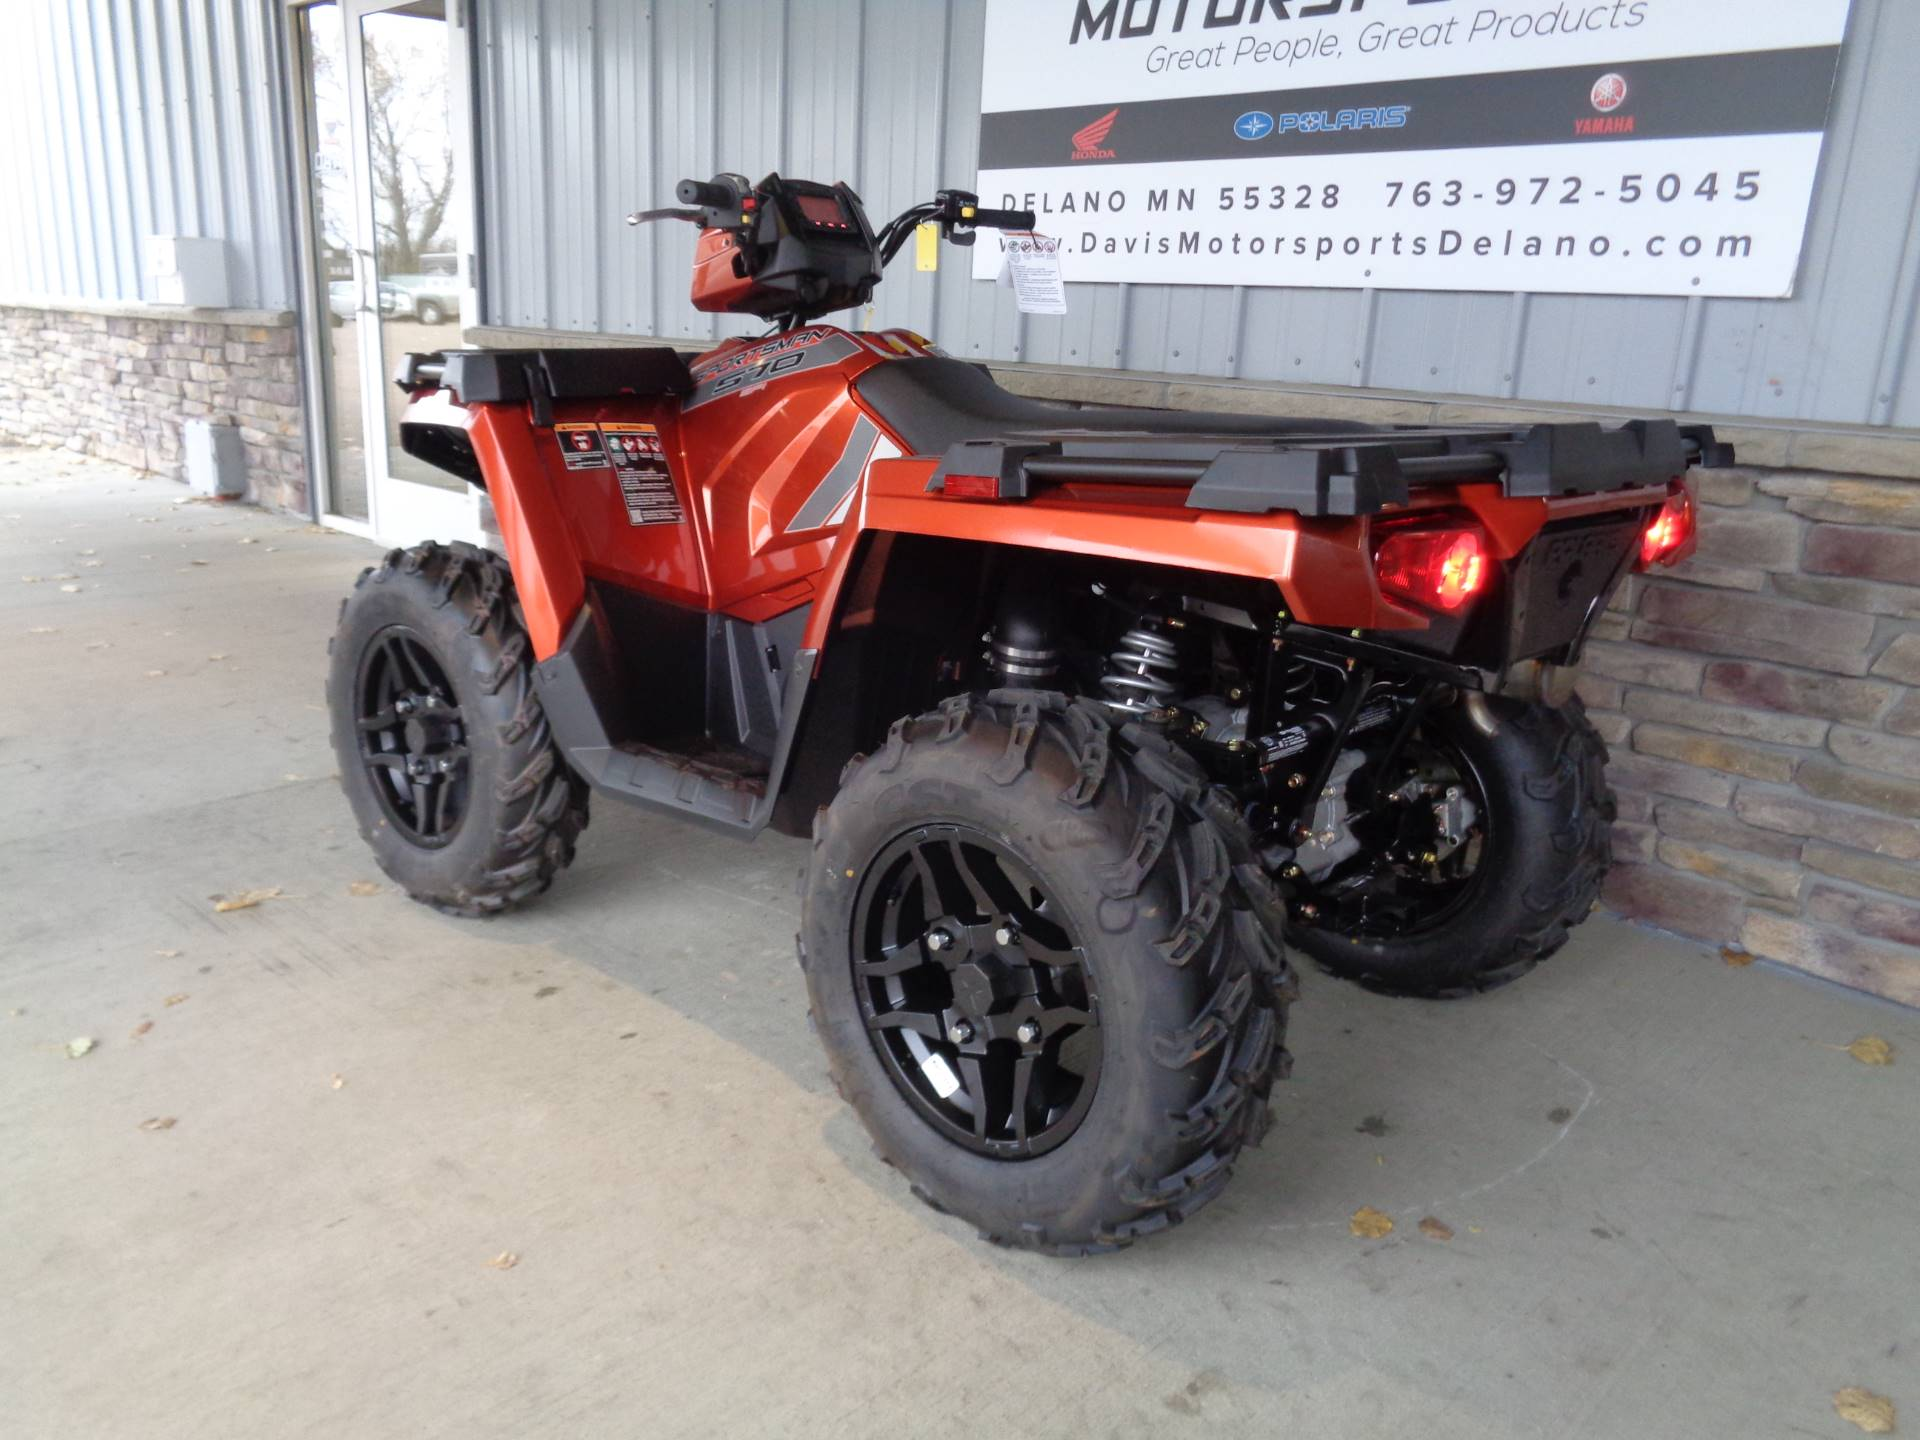 2020 Polaris Sportsman 570 Premium in Delano, Minnesota - Photo 6